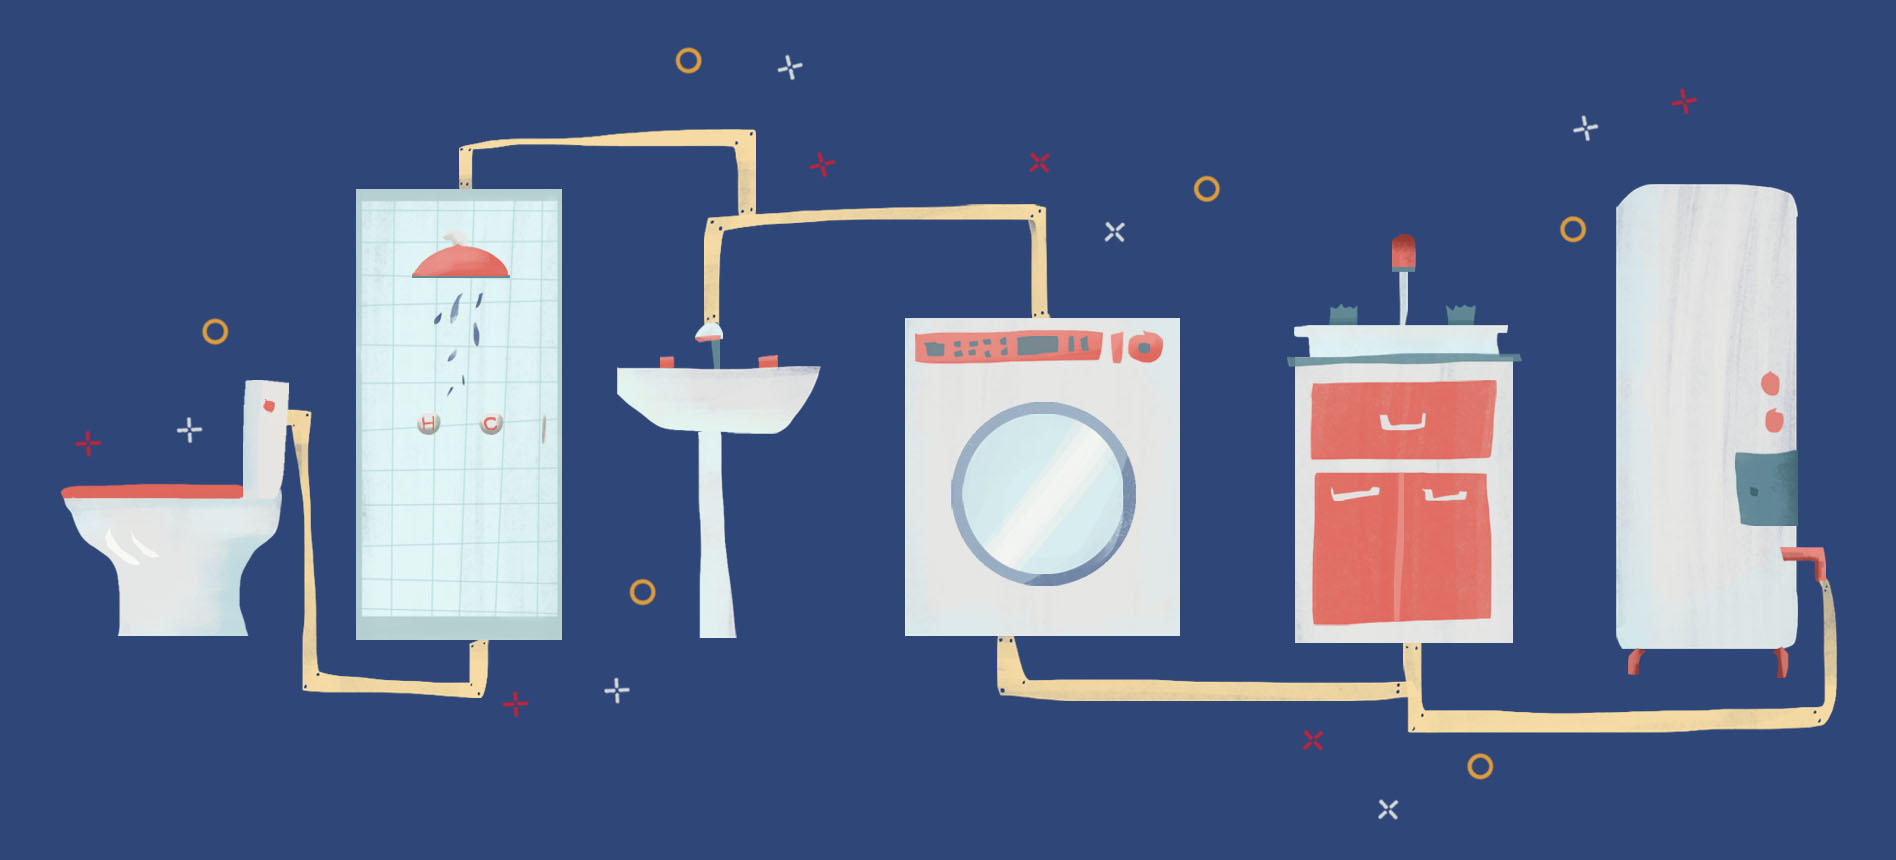 How to Run a Successful Plumbing Business